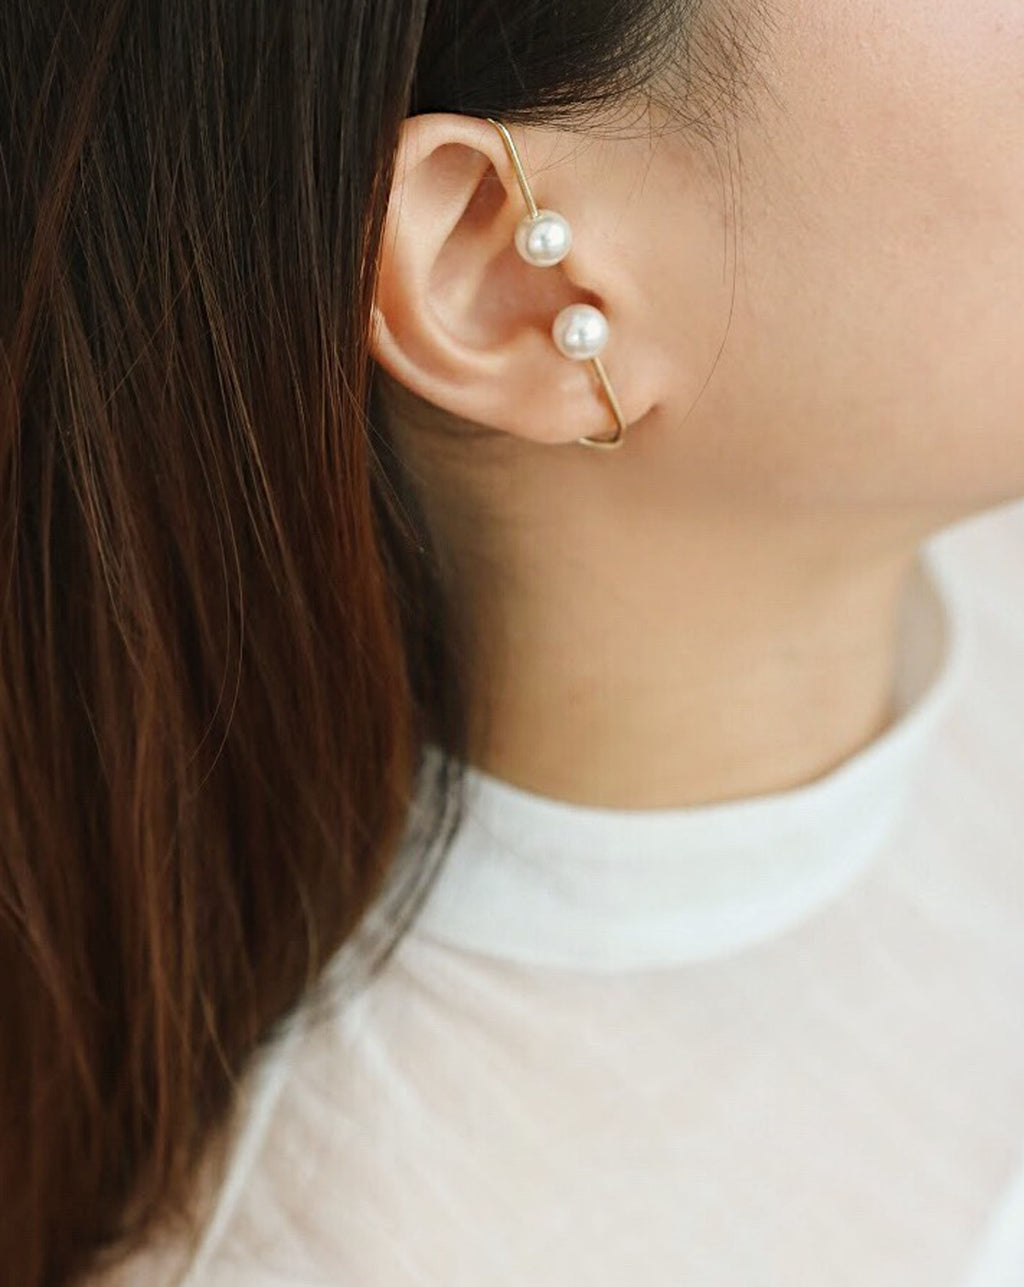 Edgy yet classy pearl ear cuff in gold - The Hexad Jewelry